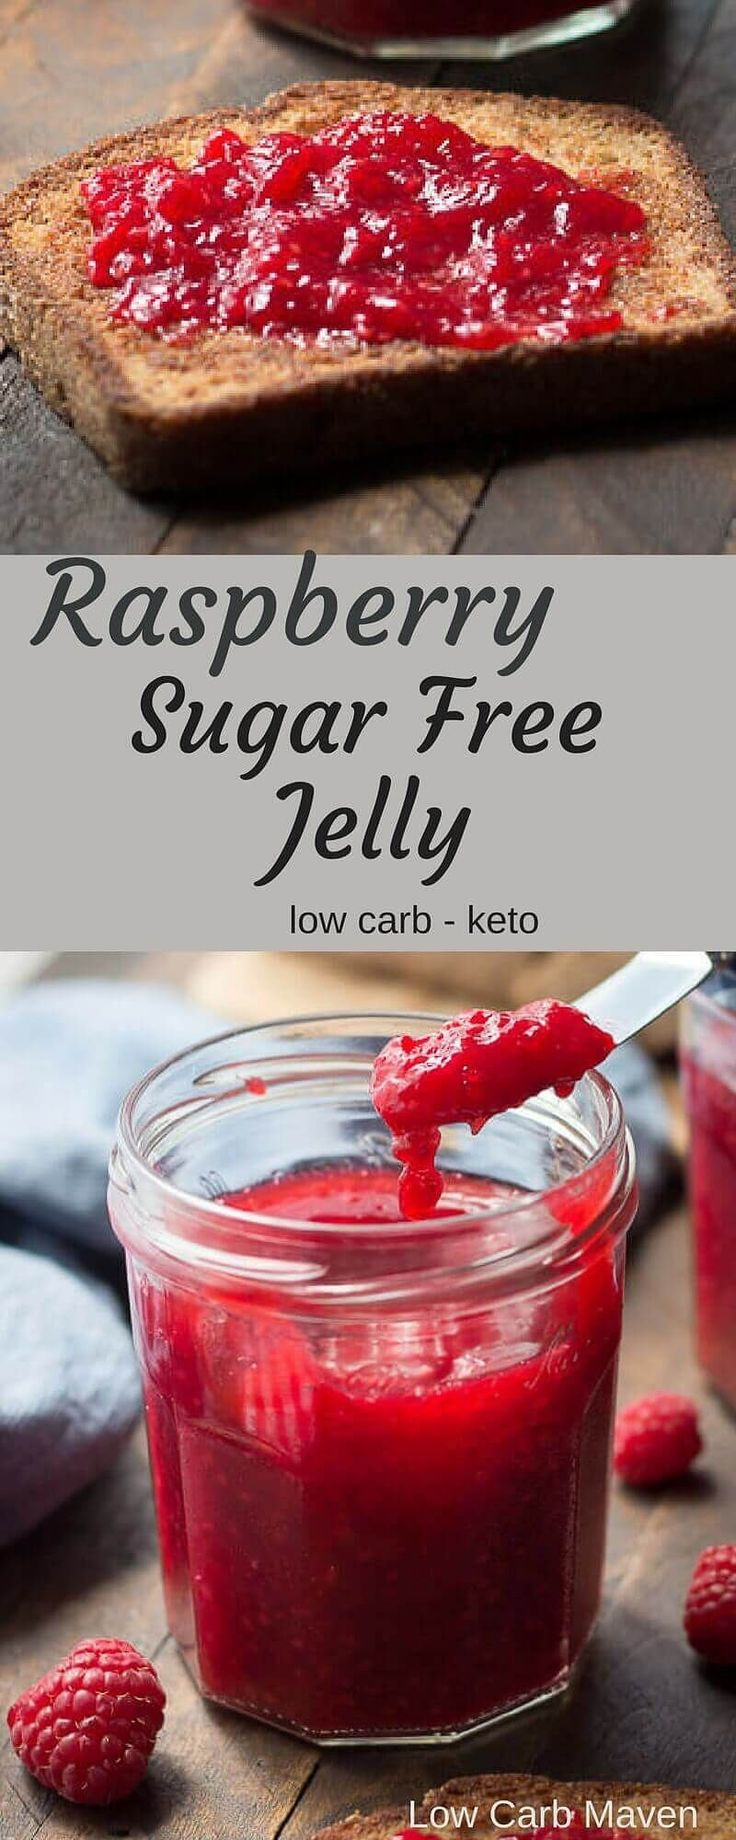 Raspberry Sugar Free Jelly (sugar free jam) is perfect for low carb and keto breads